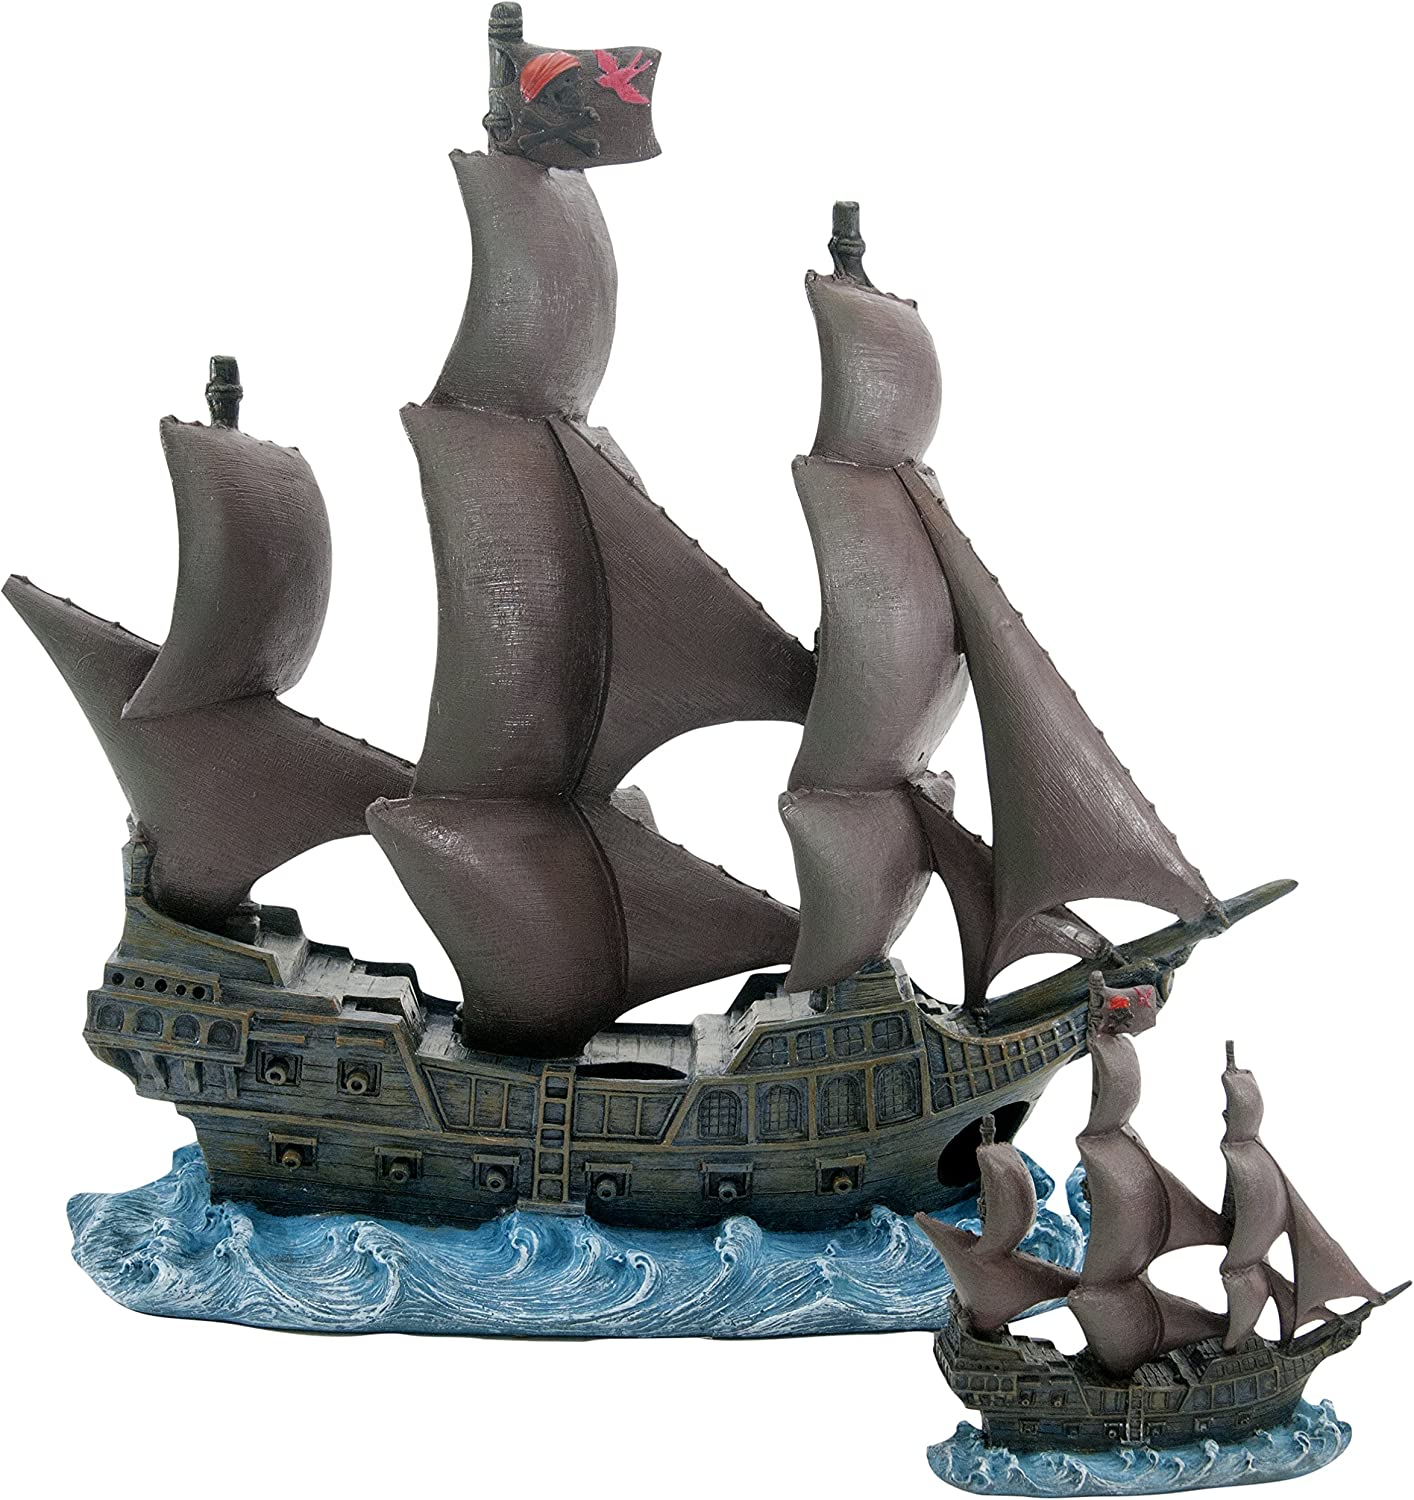 Penn Plax Officially Licensed Disney Aquarium Ornaments from Pirates of The Caribbean